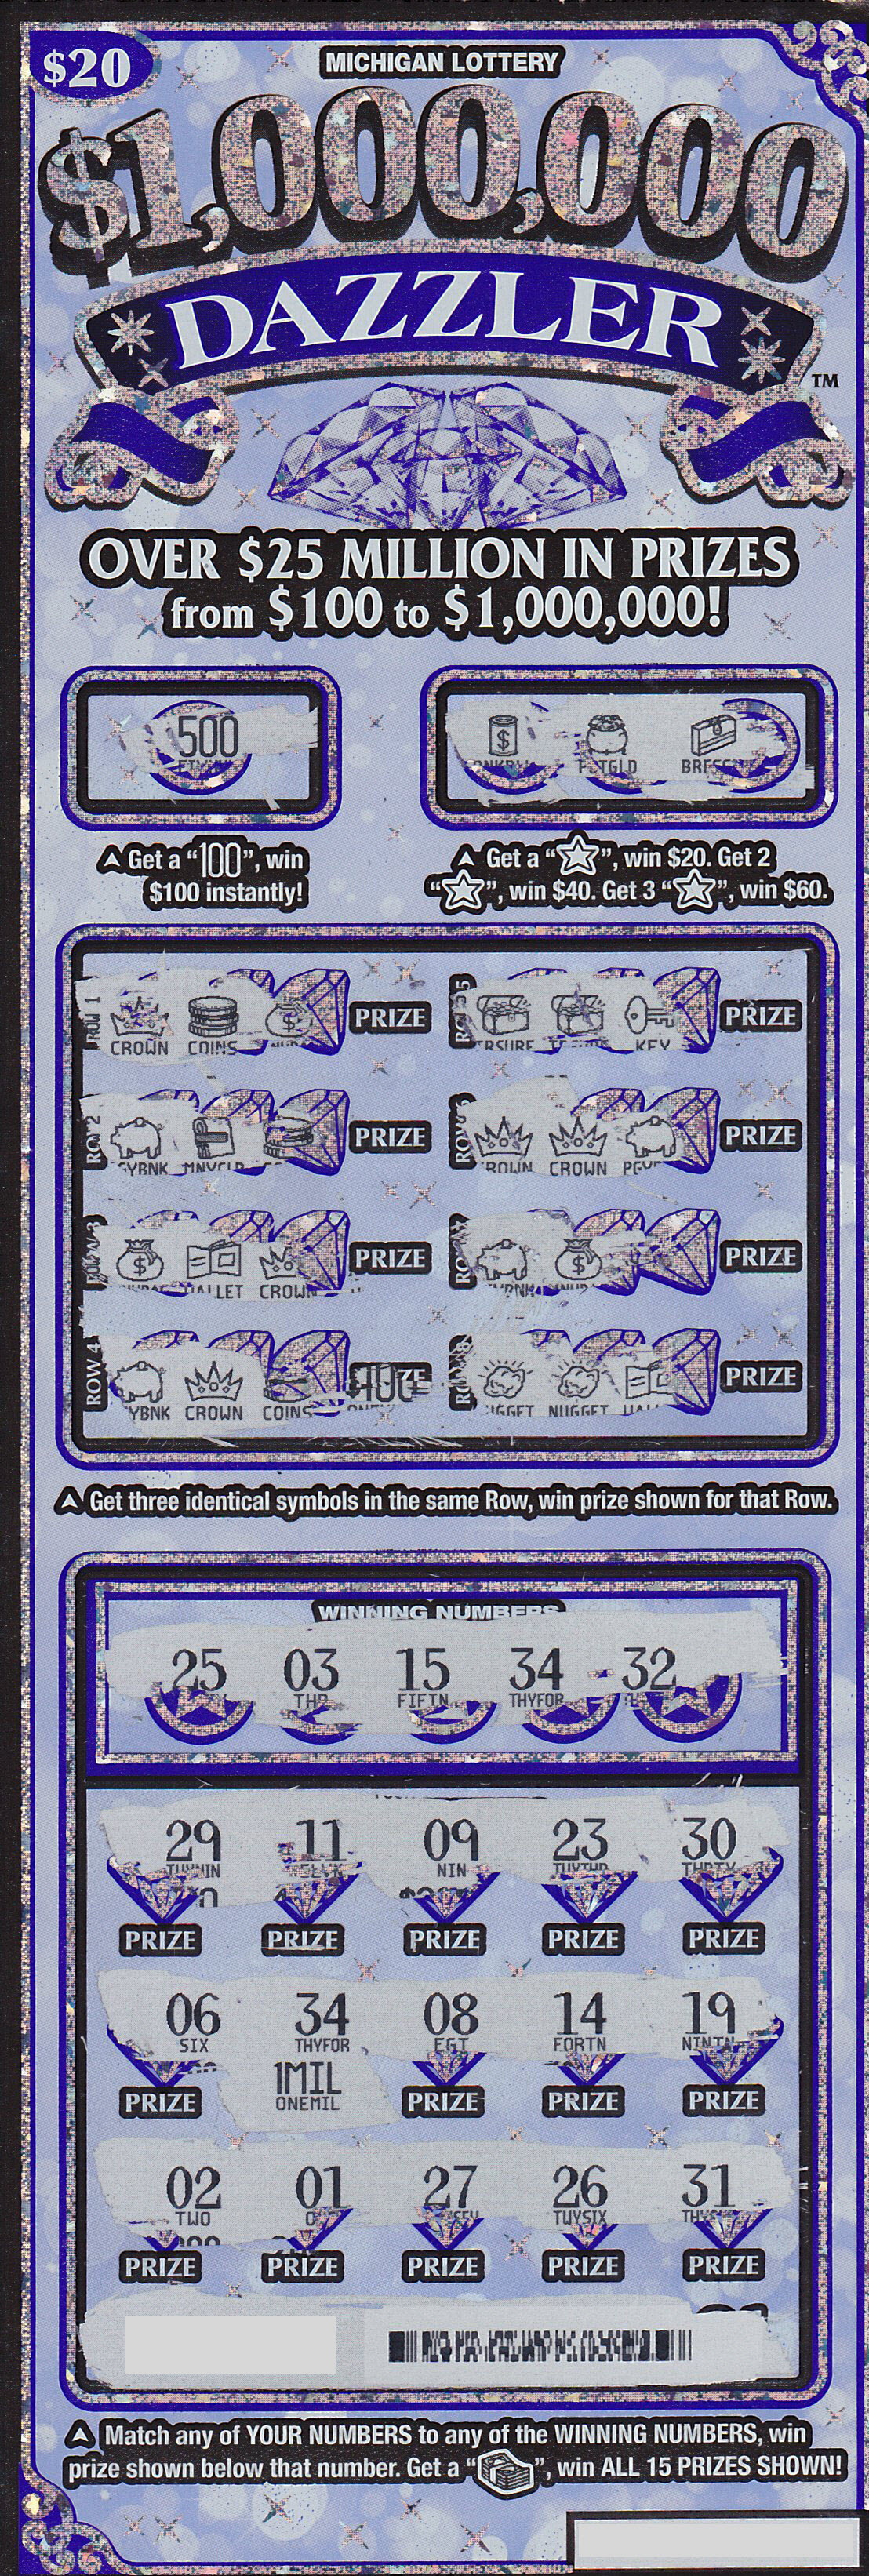 Macomb County Man Wins $1 Million Playing $1,000,000 Dazzler Instant